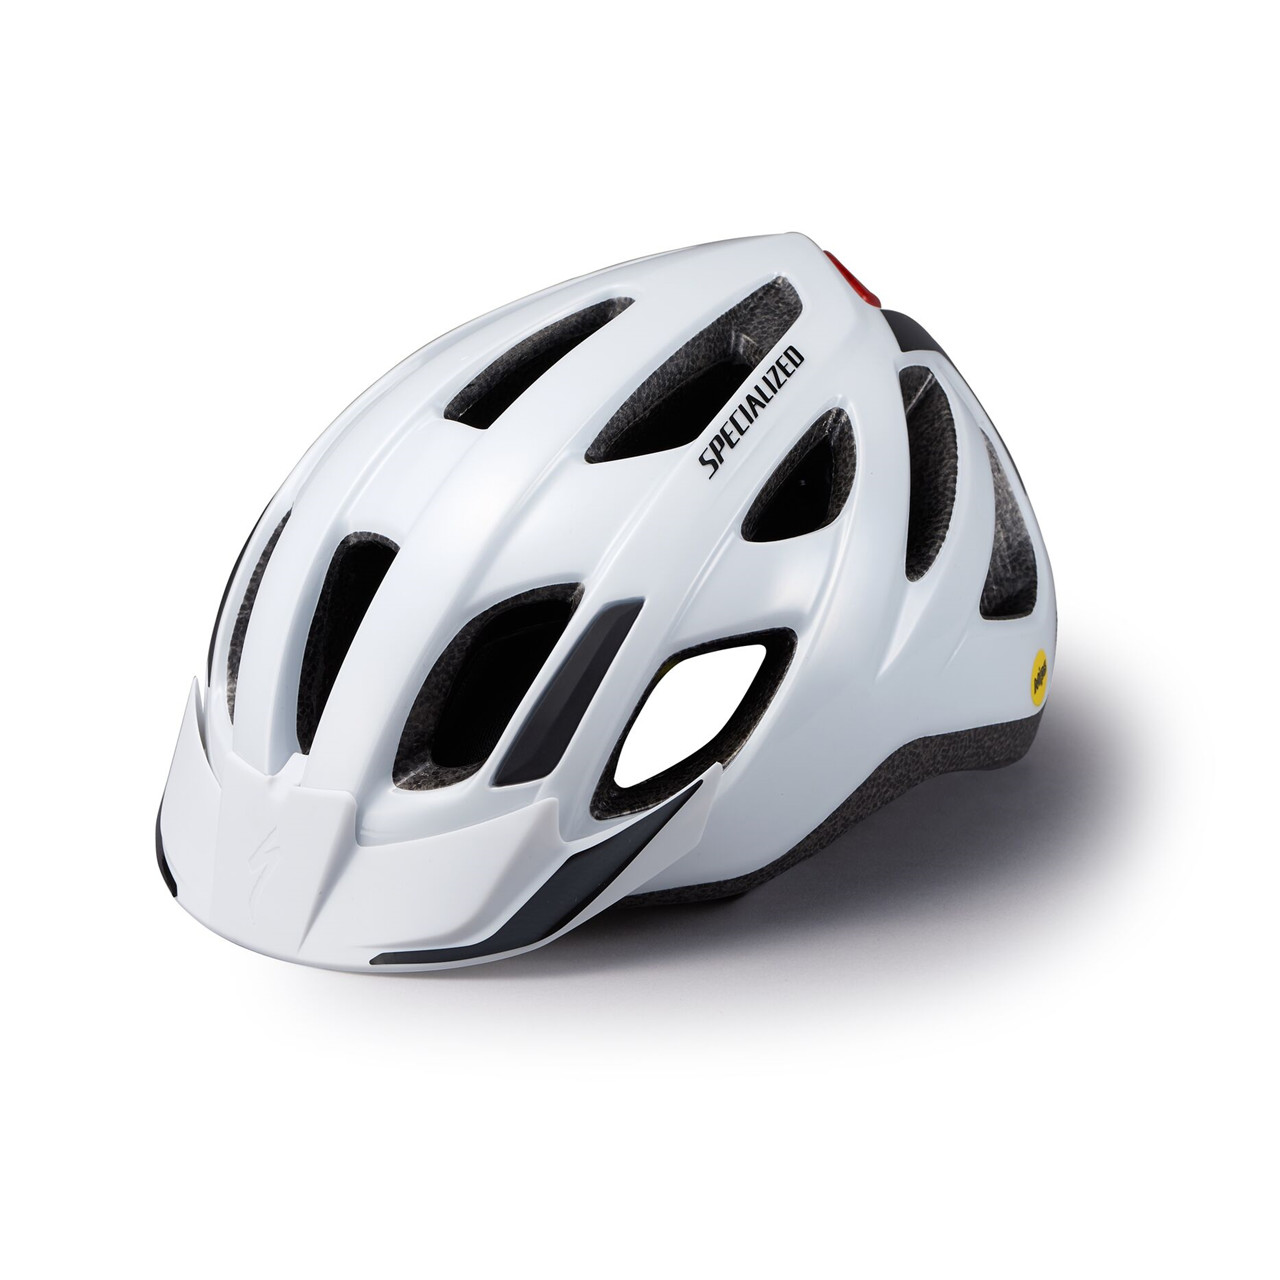 Specialized Centro Led Mips - Cykelhjelm Med Lys (Gloss White, Adult)